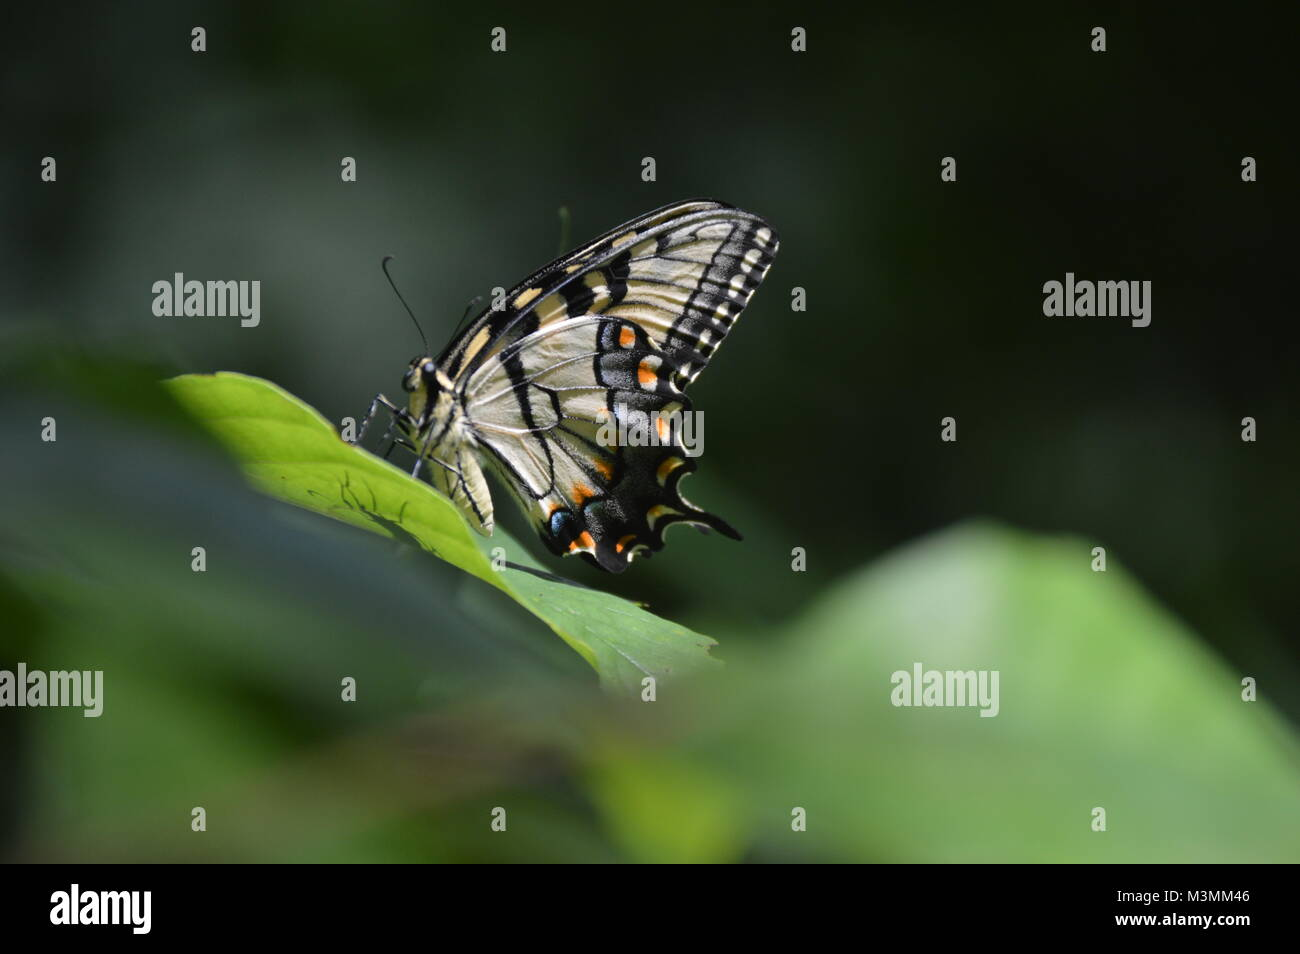 A yellow and orange butterfly sitting on a green leaf with a blurry green leaf in the foreground. Stock Photo